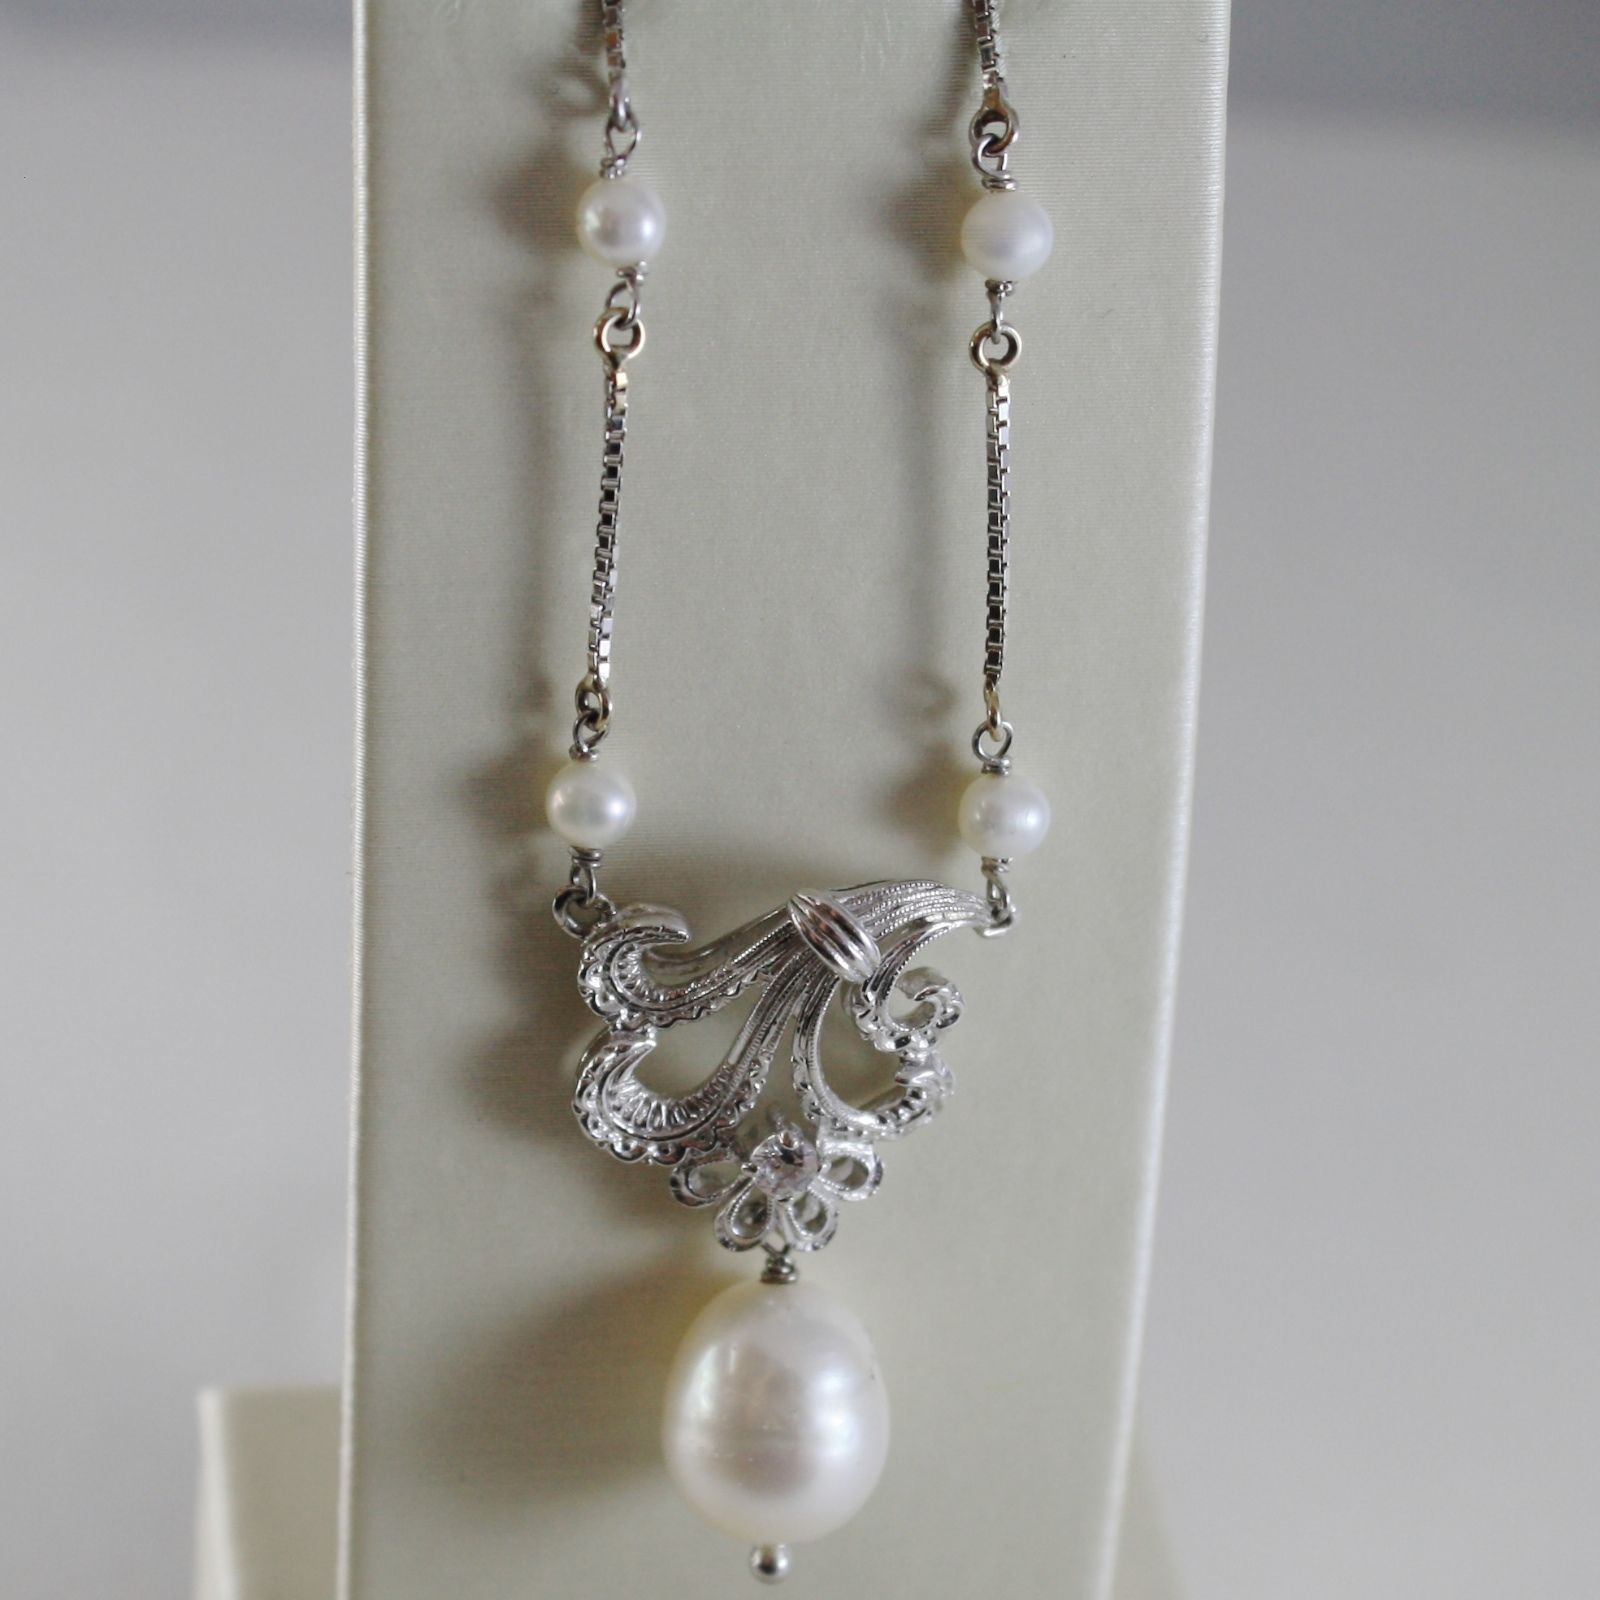 18K WHITE GOLD CHAIN NECKLACE WITH FLOWER ANTIQUE STYLE AND PEARLS MADE IN ITALY